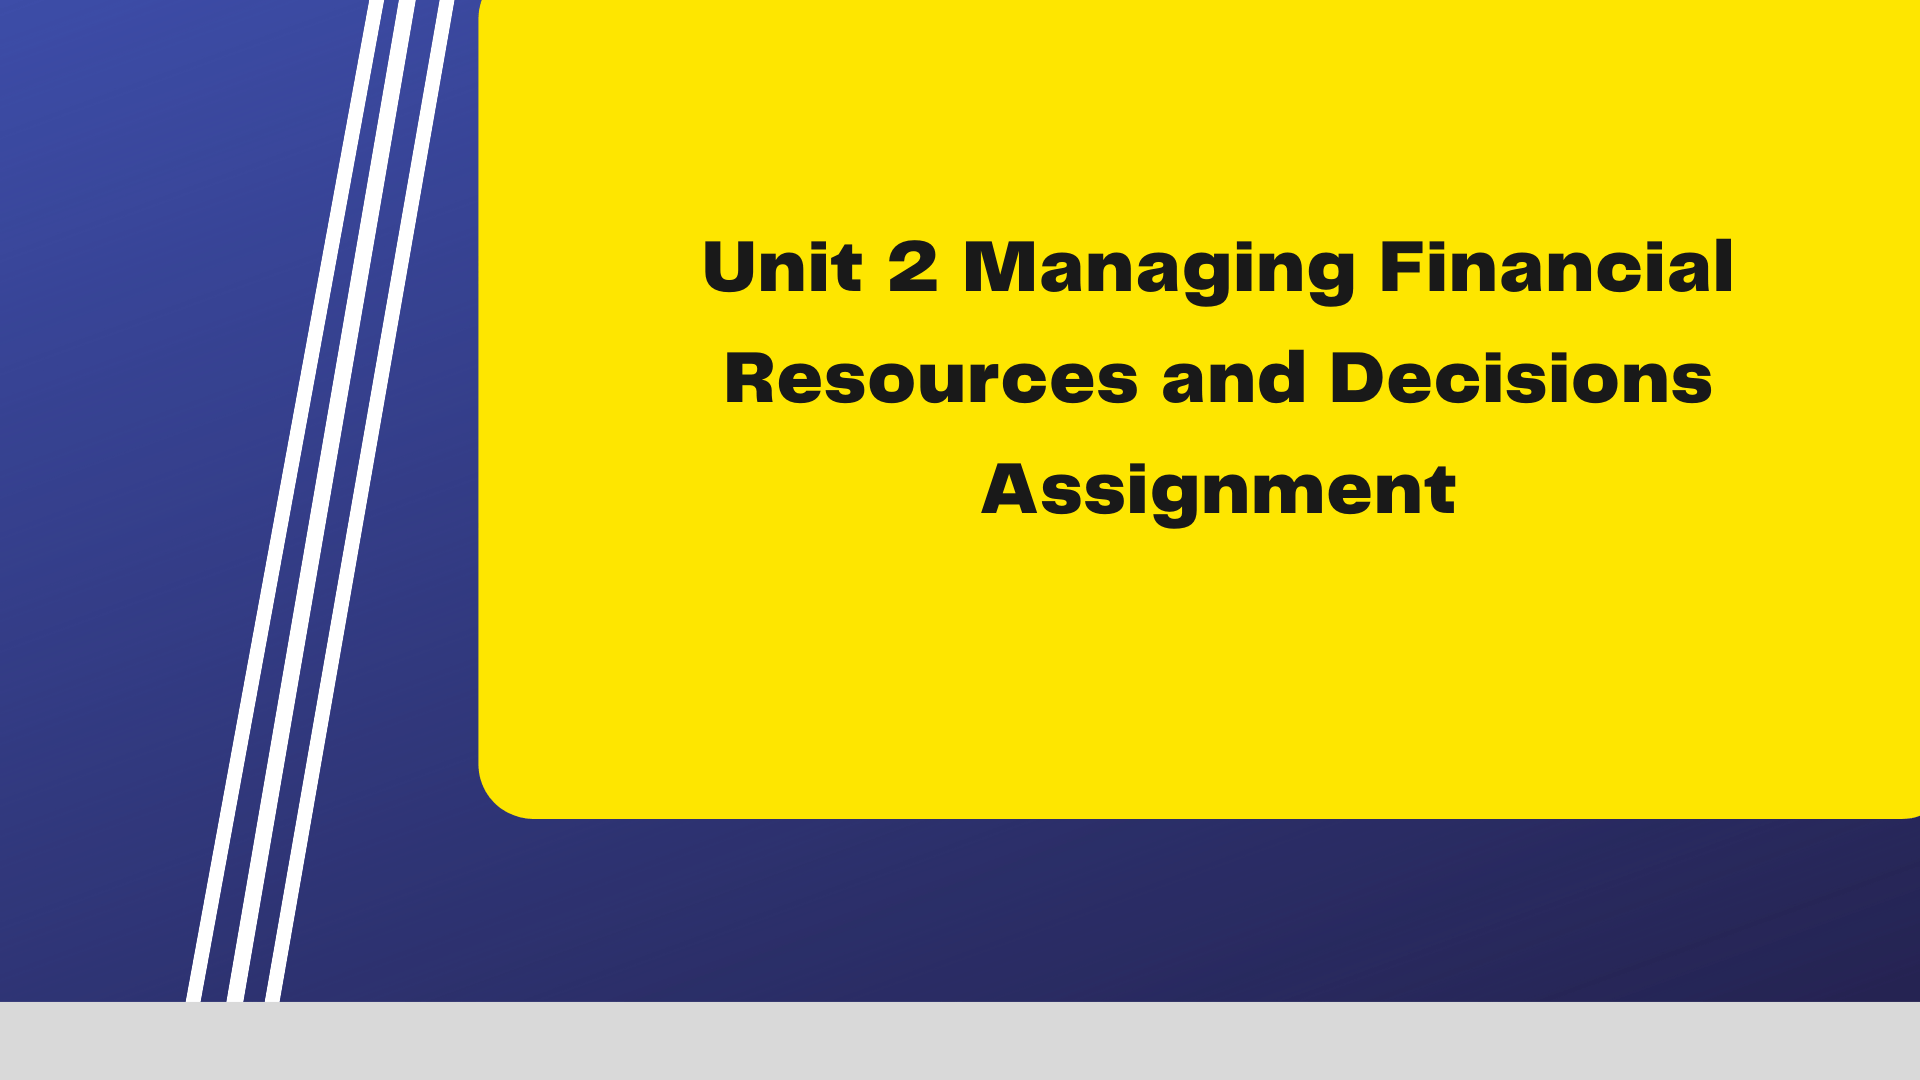 Unit 2 Managing Financial Resources and Decisions Assignment